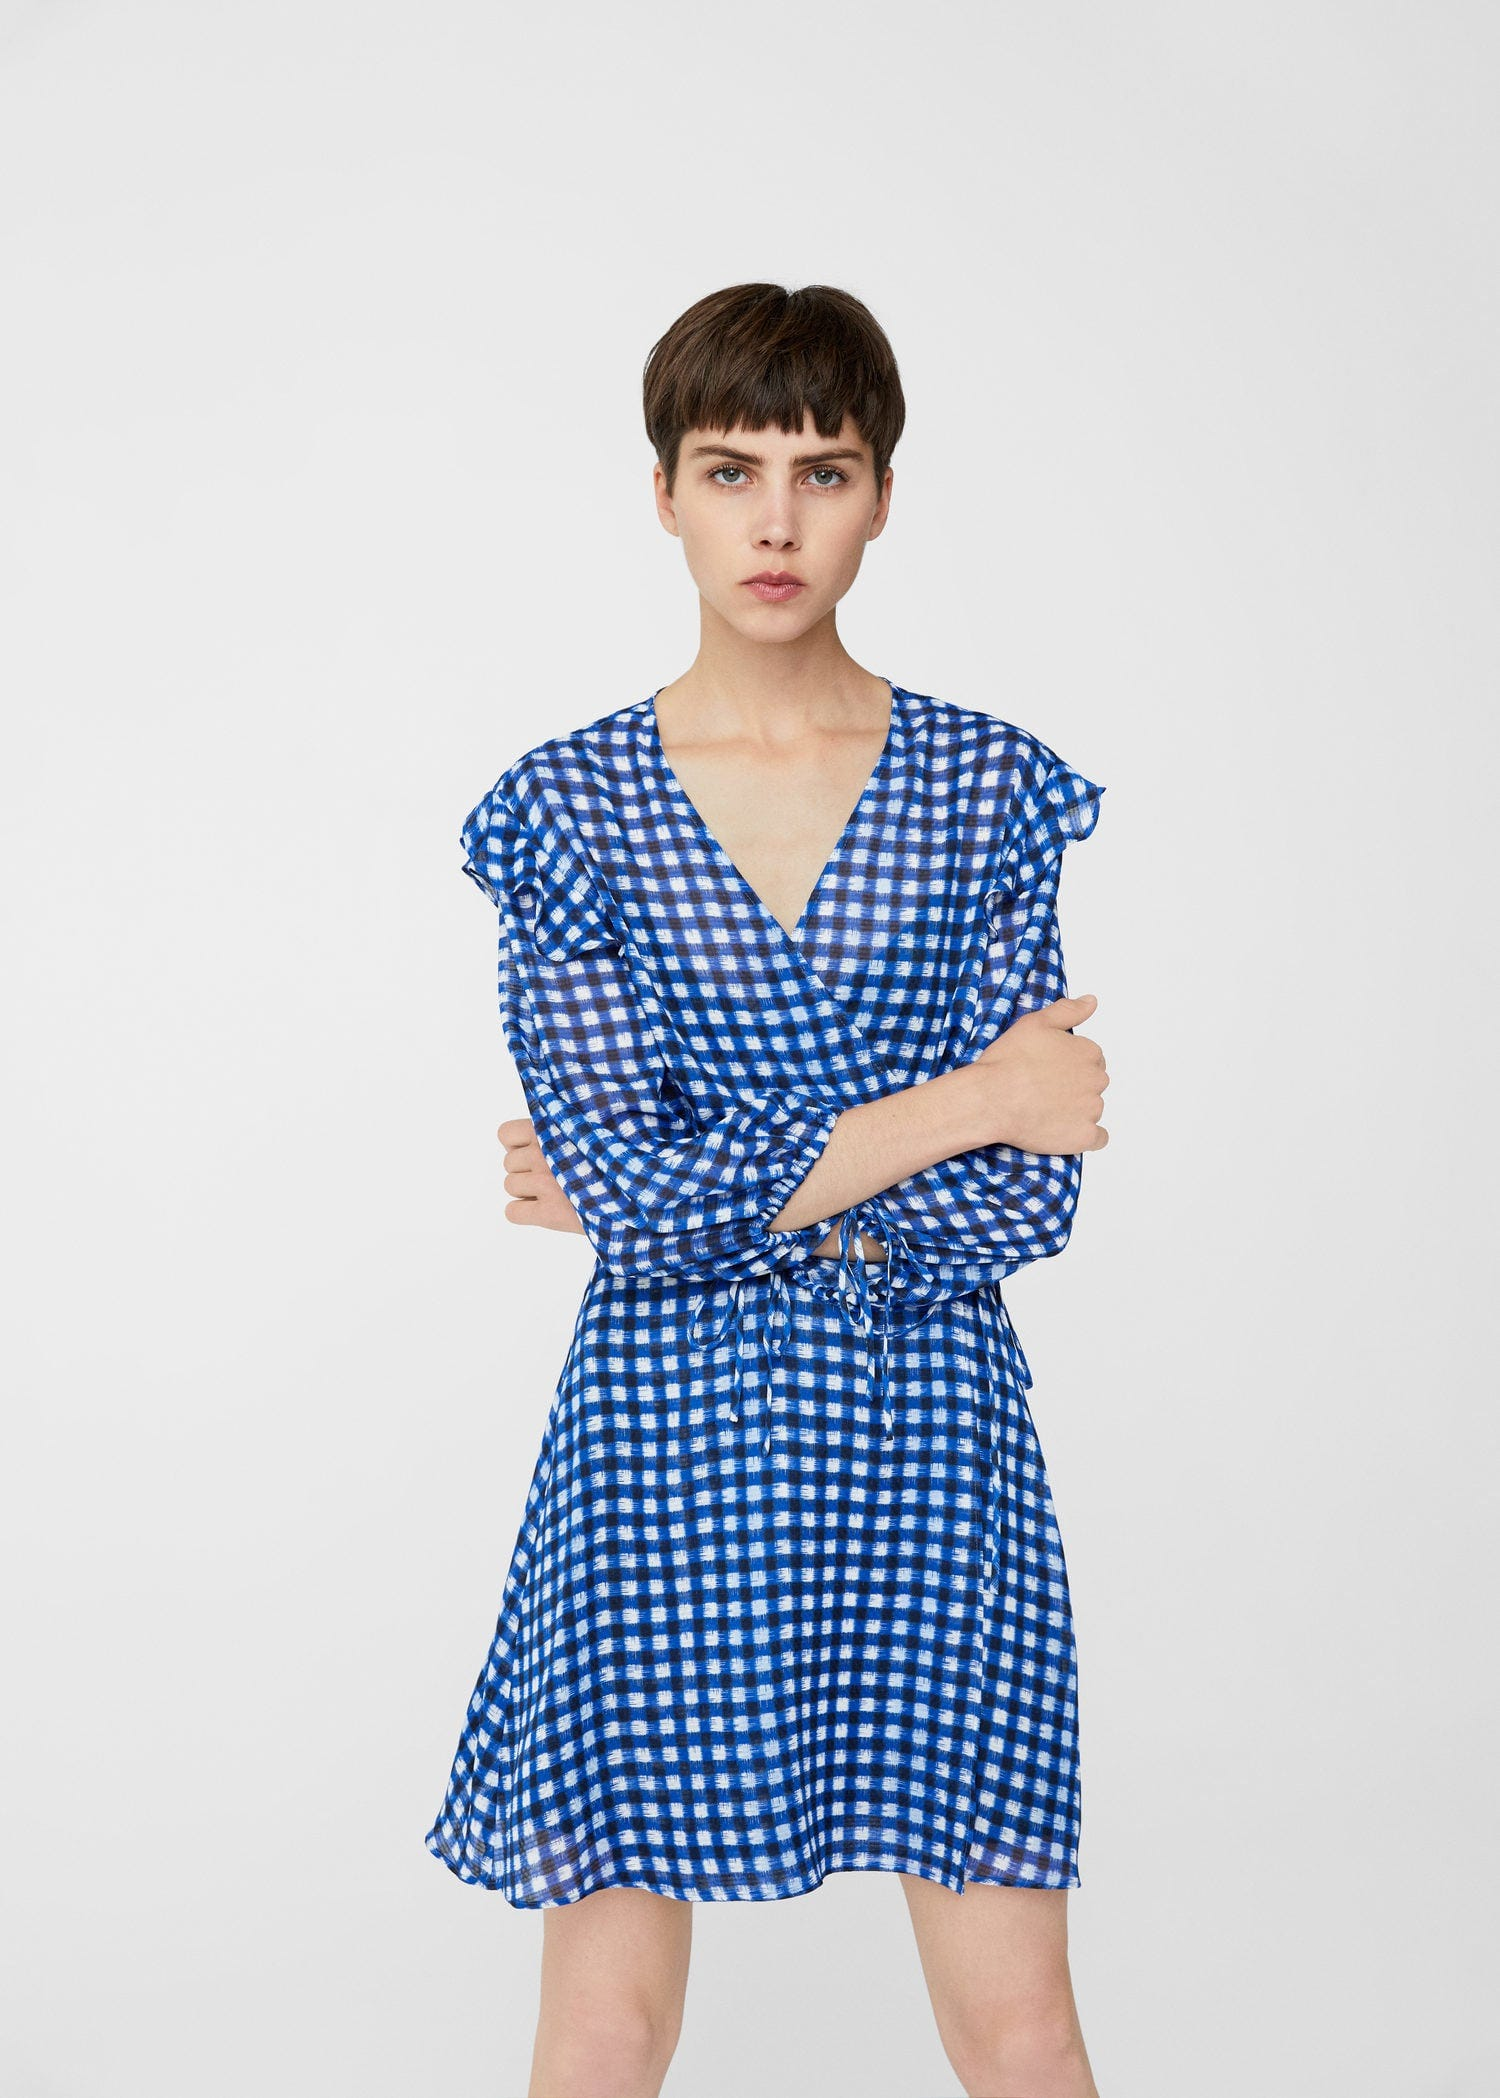 End Of Summer Sales Dresses - HM Mango J Crew Loft